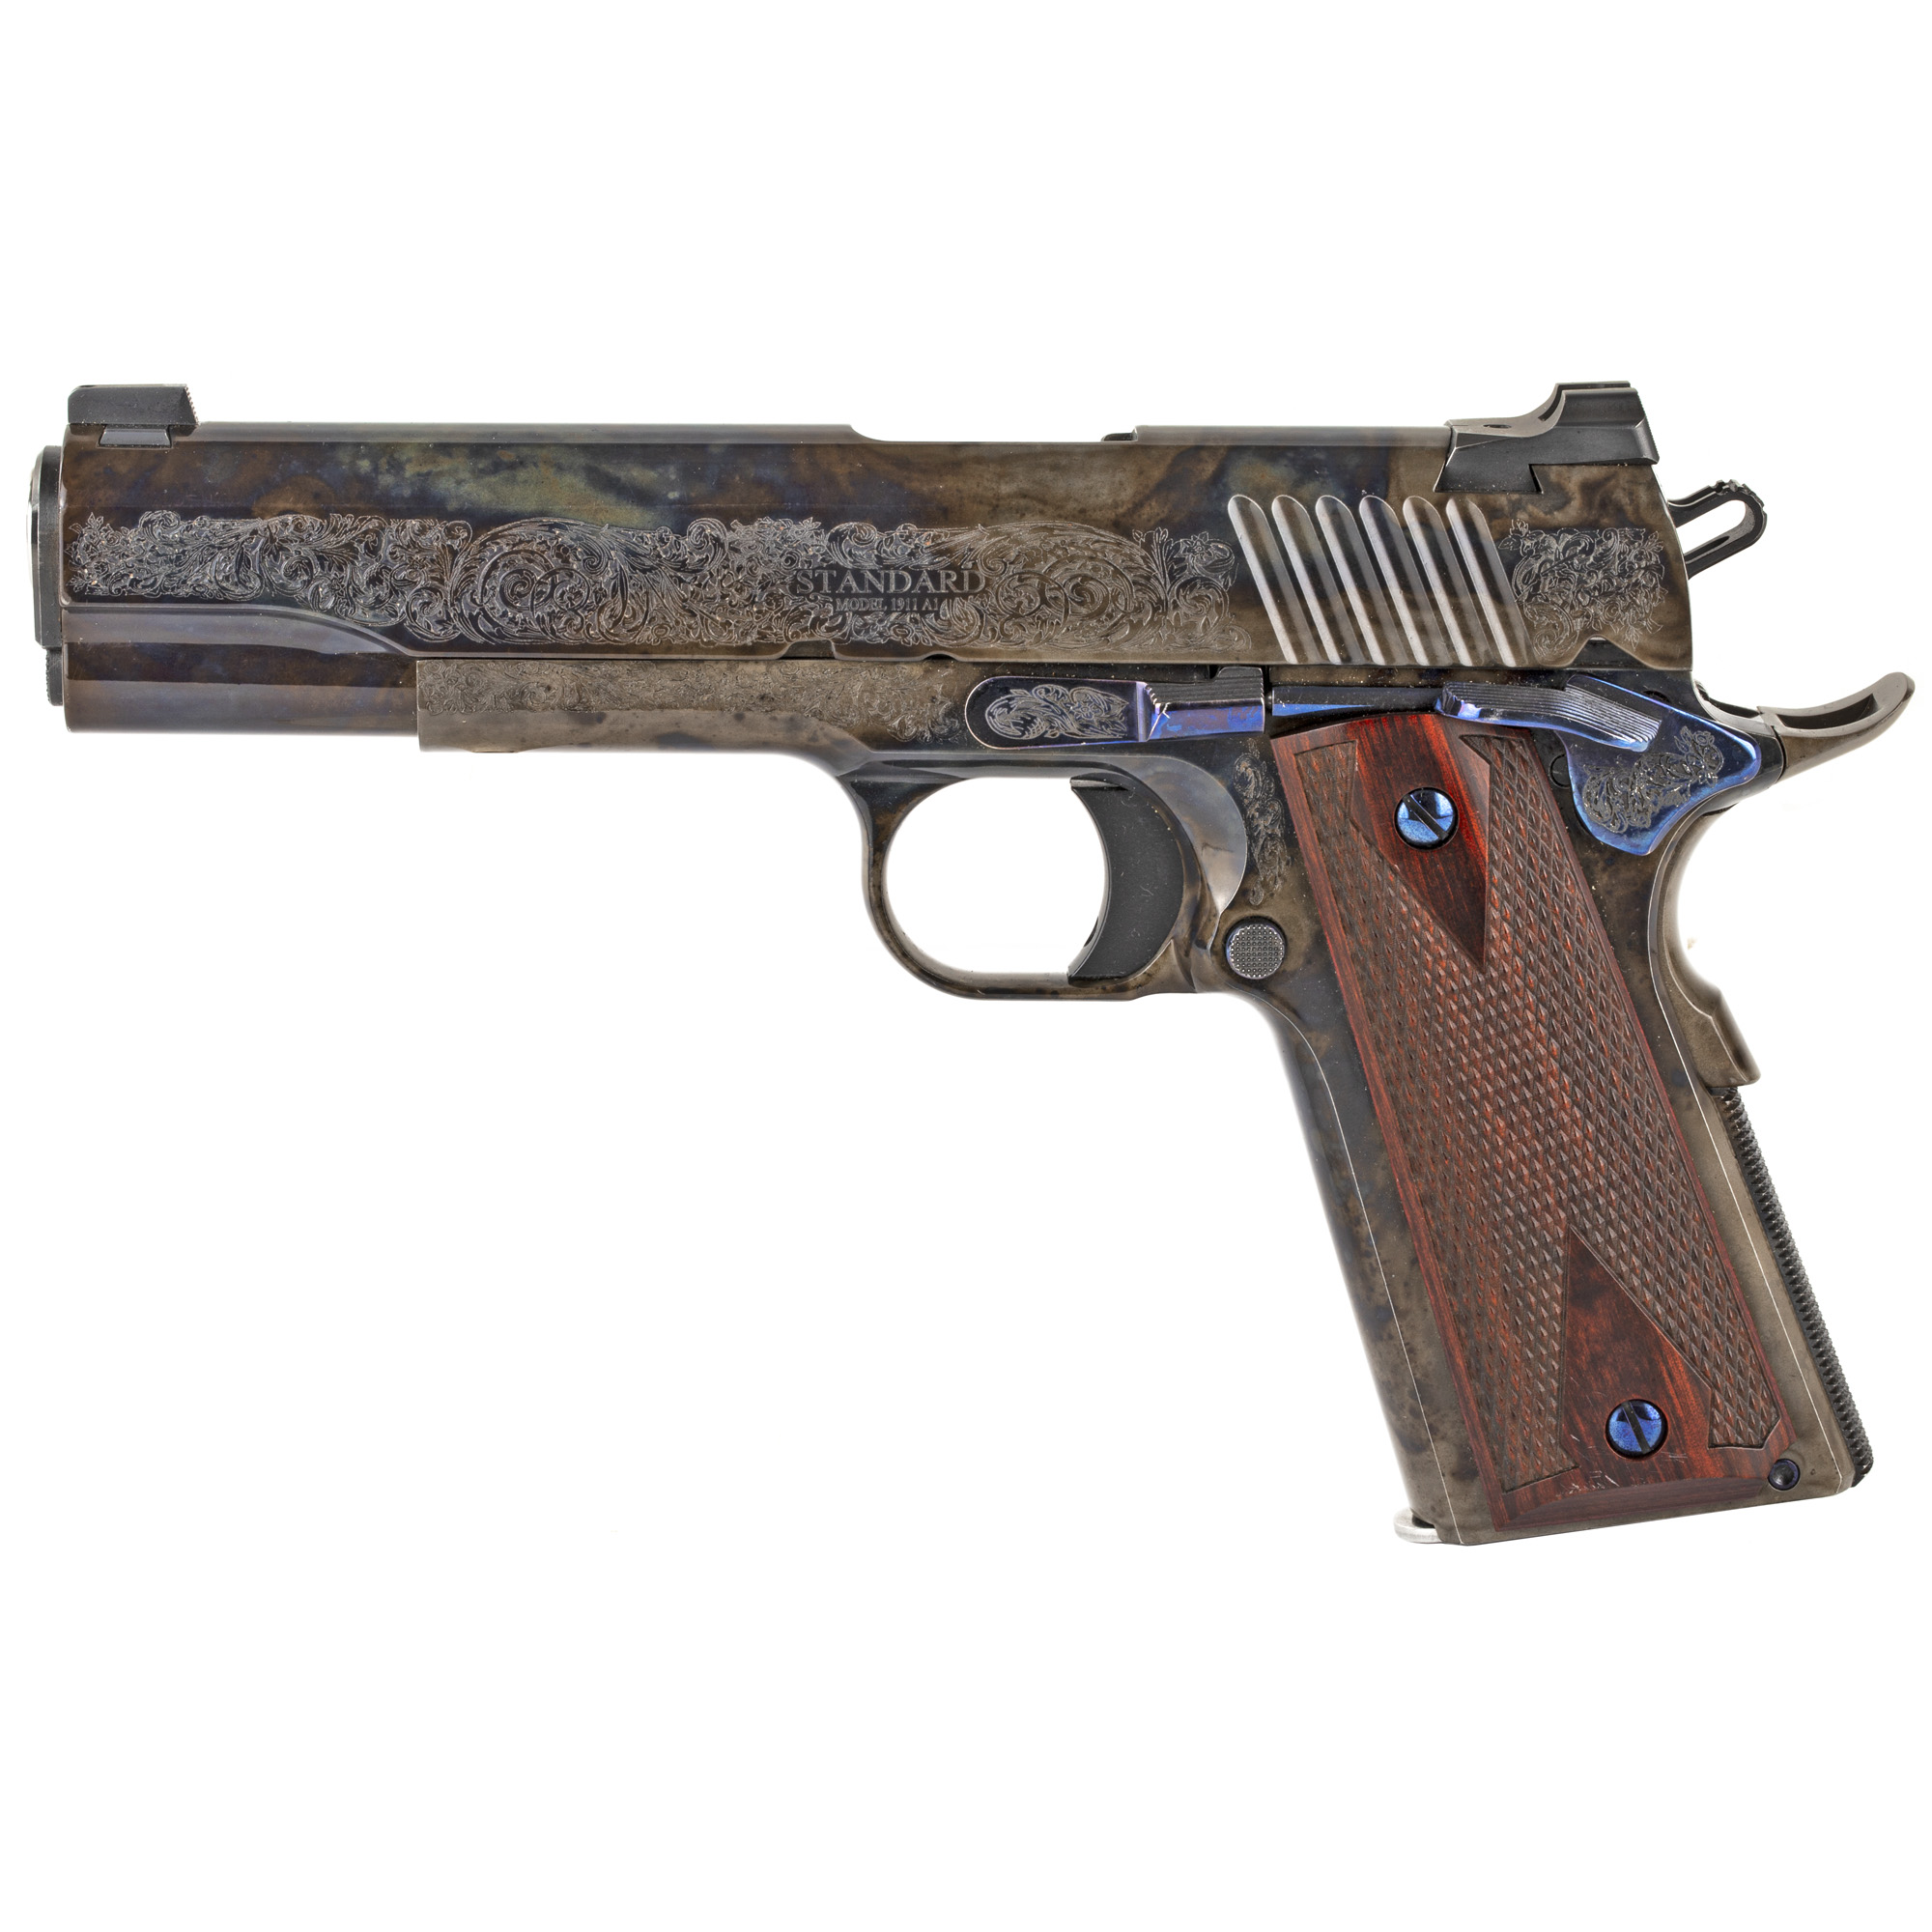 """The 1911CC1 features a 5 inch Stainless Steel match grade barrel with match bushing"""" lowered and flared ejection port"""" up-swept beavertail grip safety"""" extended magazine release"""" and high polished case colored frame"""" slide"""" and small parts."""